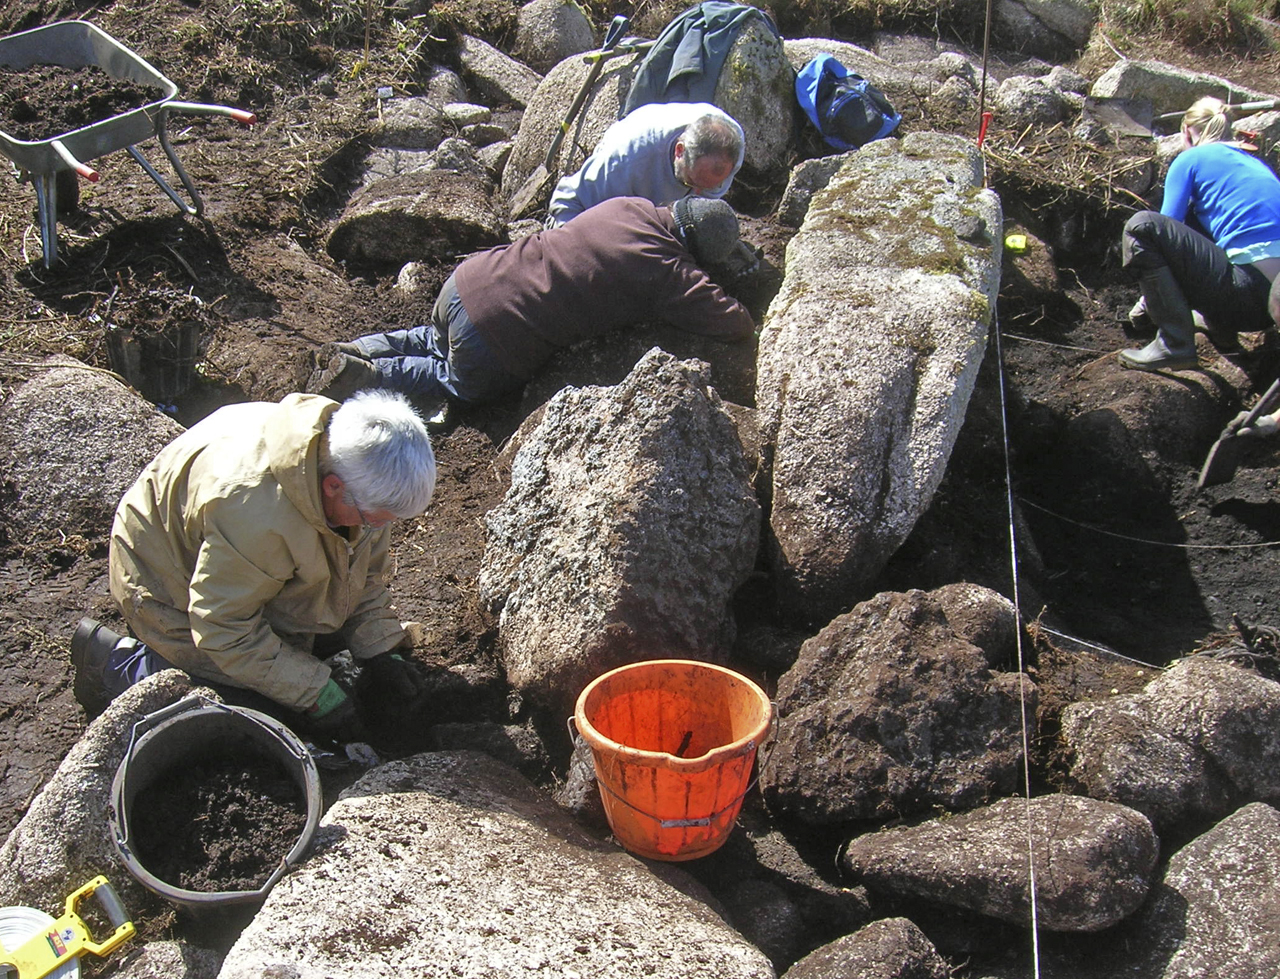 CAS members excavating at Bossilliack